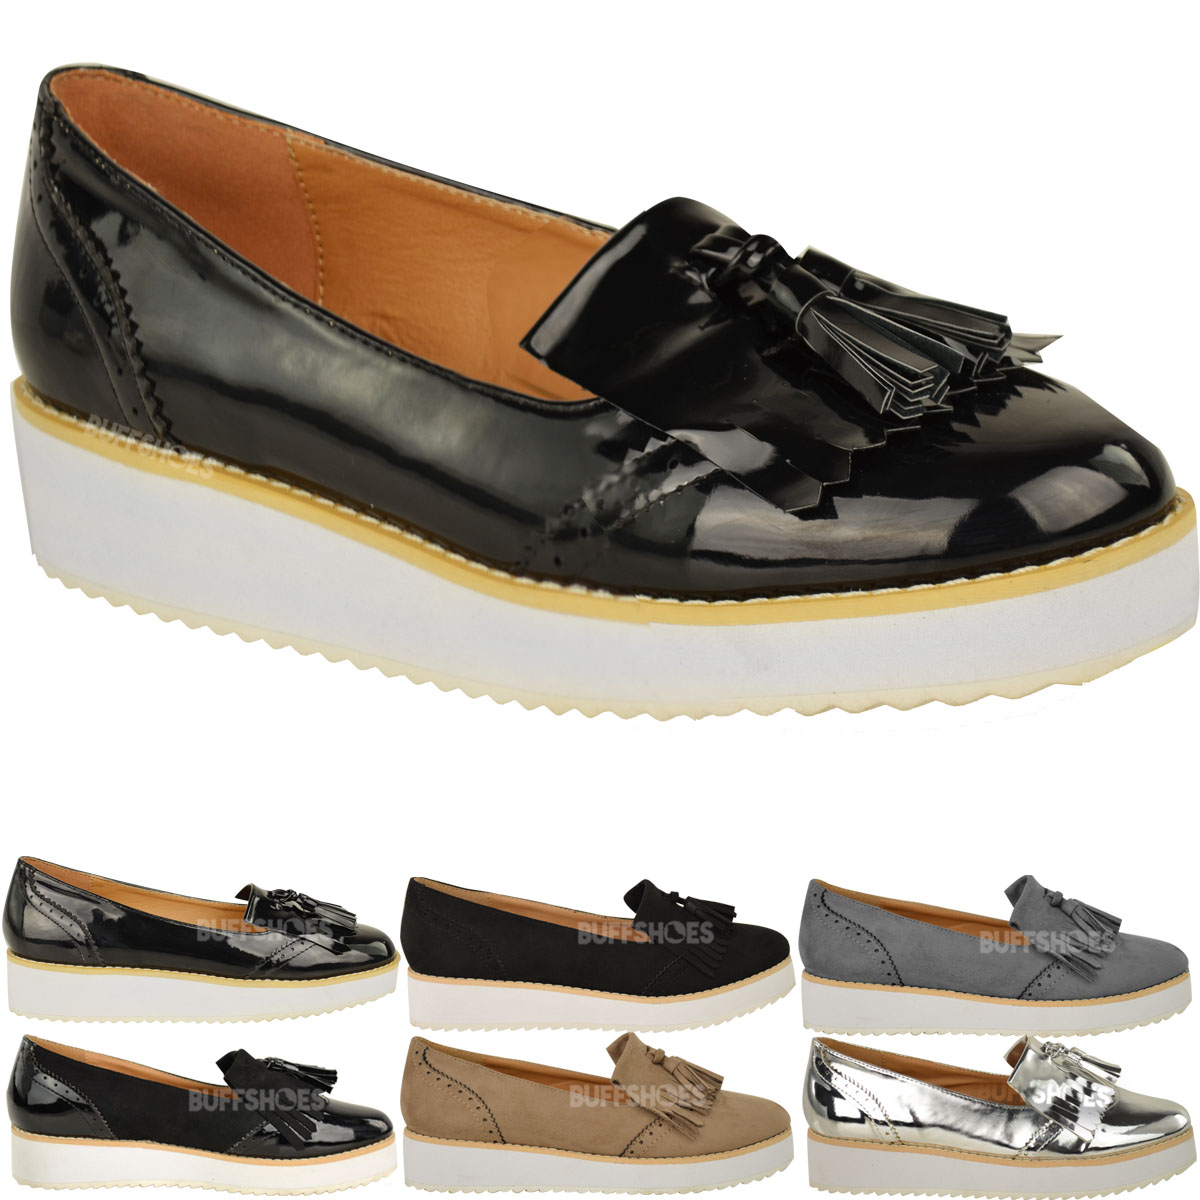 Womens Las Loafers Flat Shoes Chunky Cleated Sole